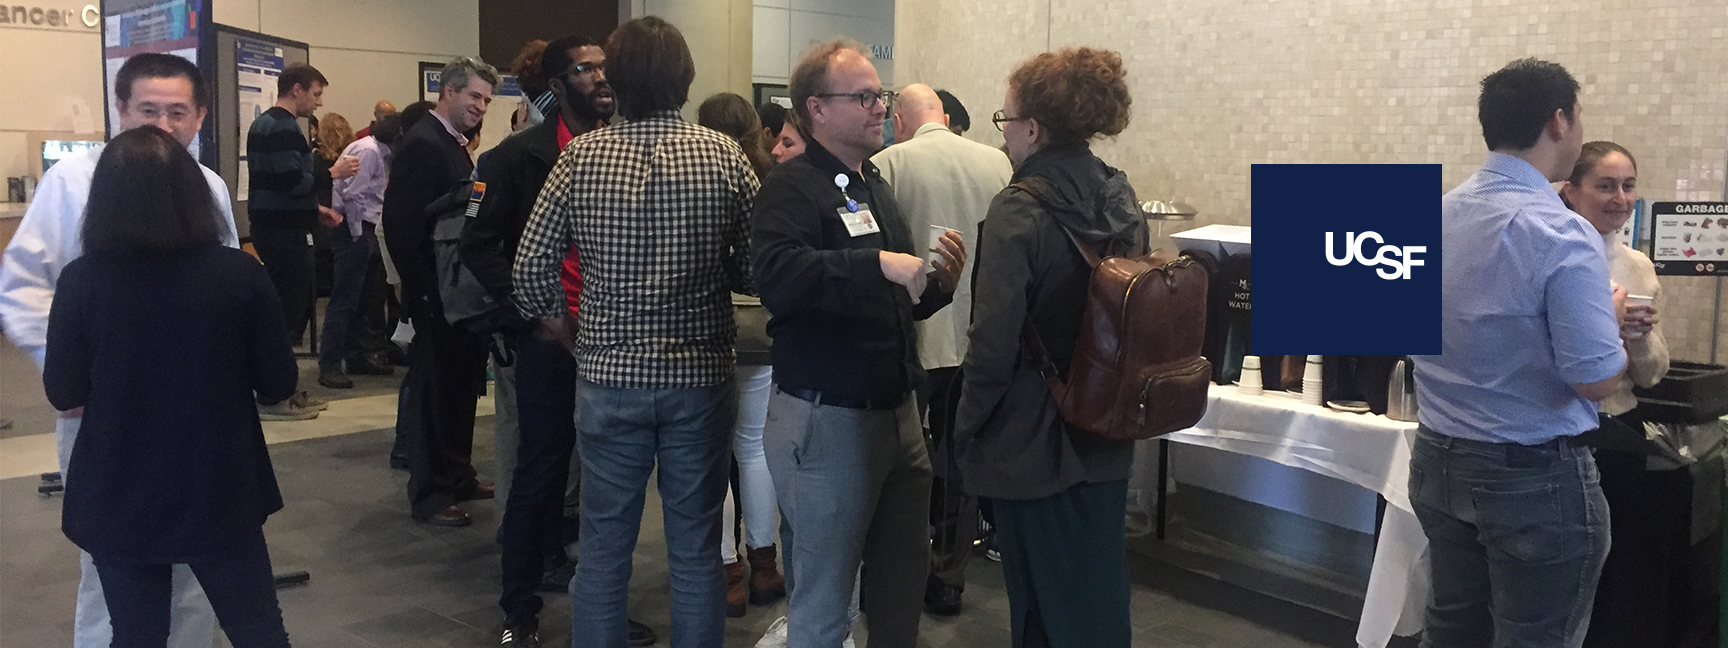 Attendees networking at the Pain and Addiction Research Retreat on December 4, 2019